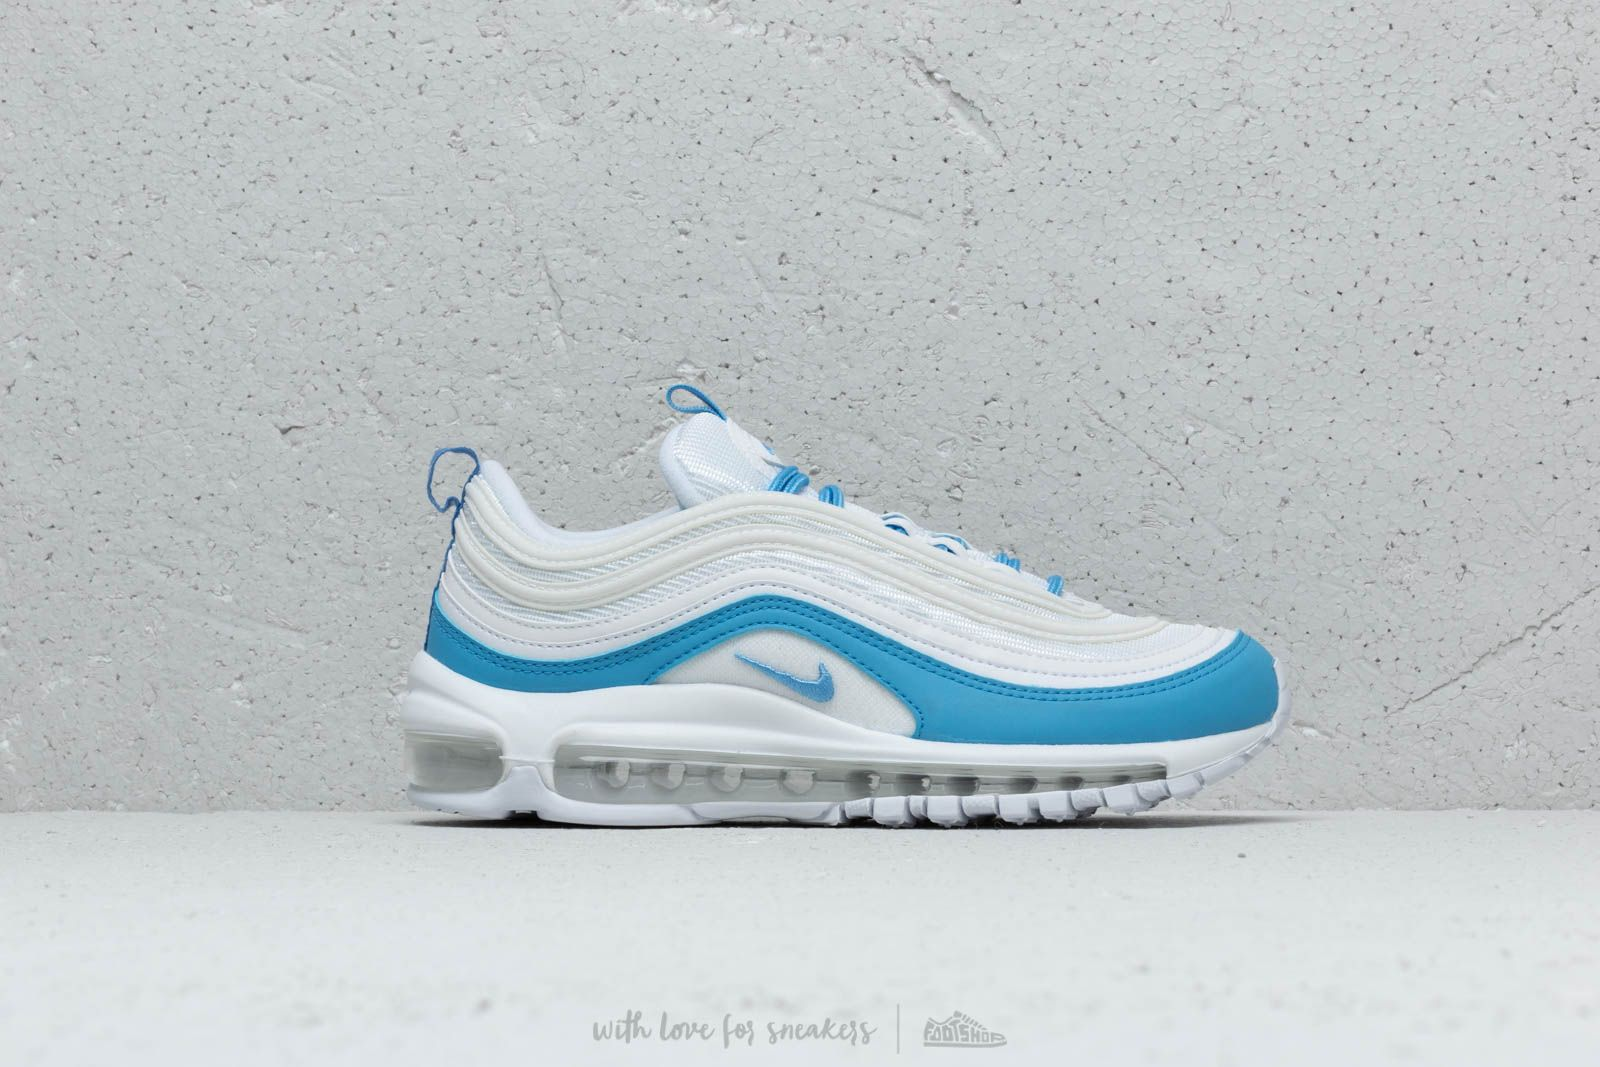 Nike W Air Max 97 Ess White University Blue | Footshop